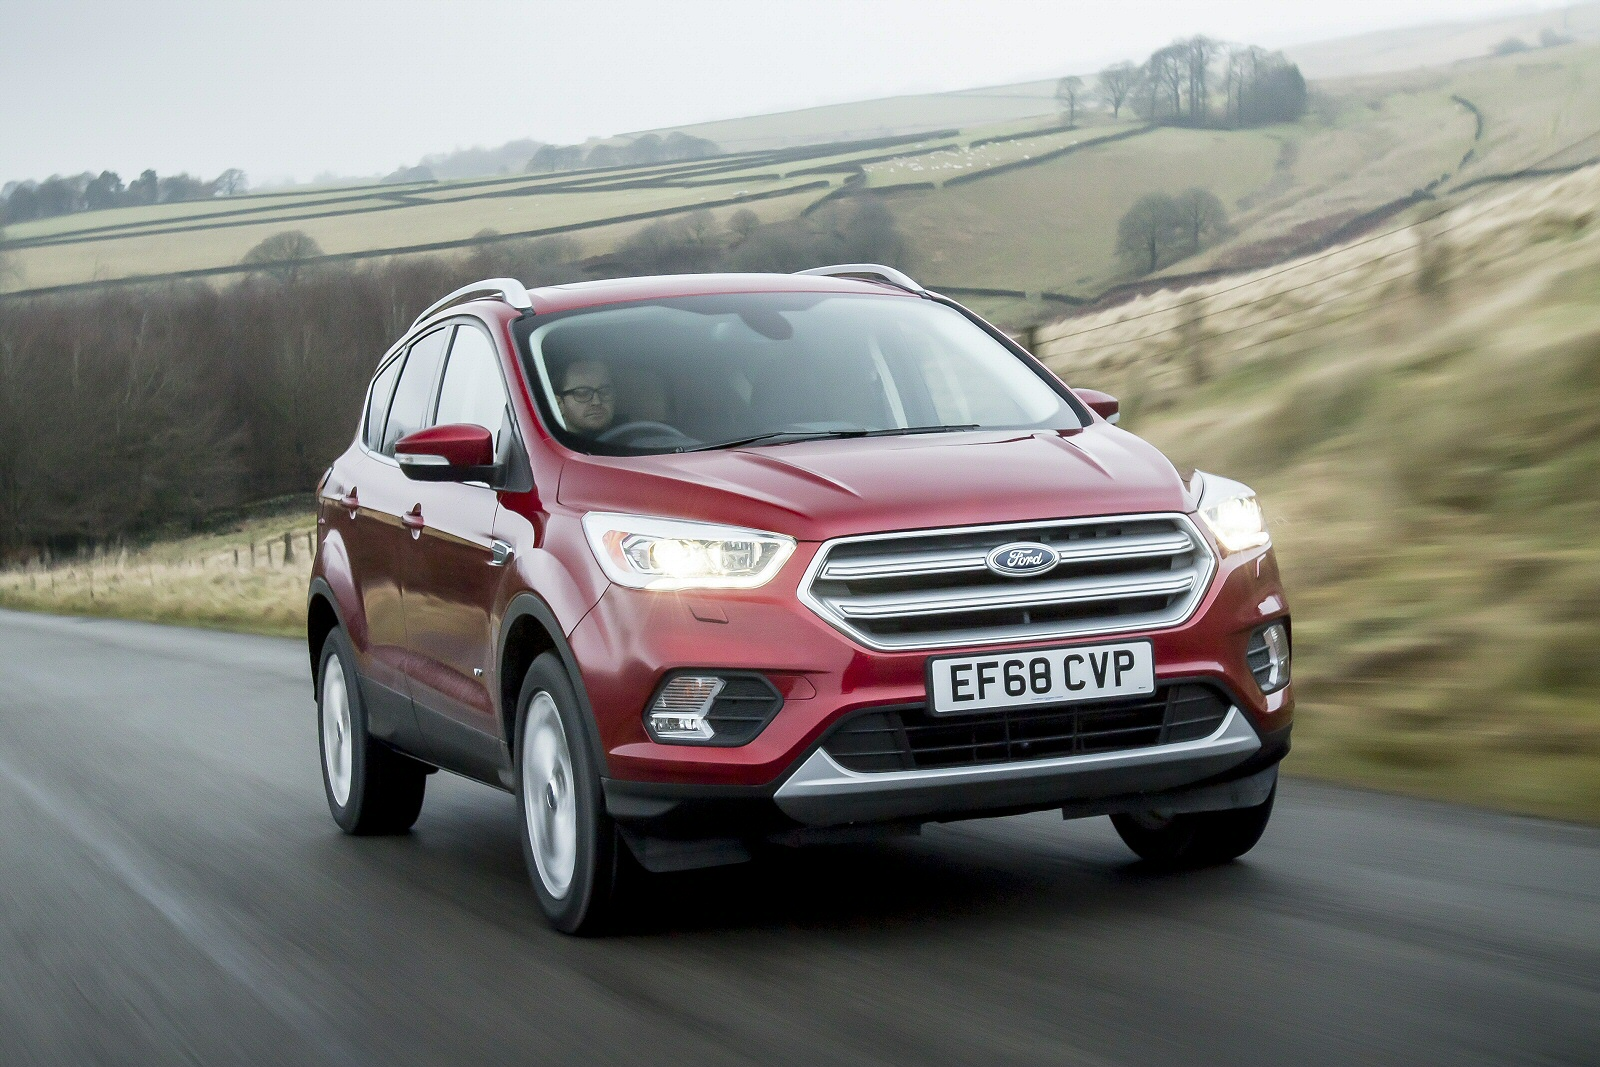 new ford kuga 1 5 tdci st line 5dr 2wd diesel estate for. Black Bedroom Furniture Sets. Home Design Ideas